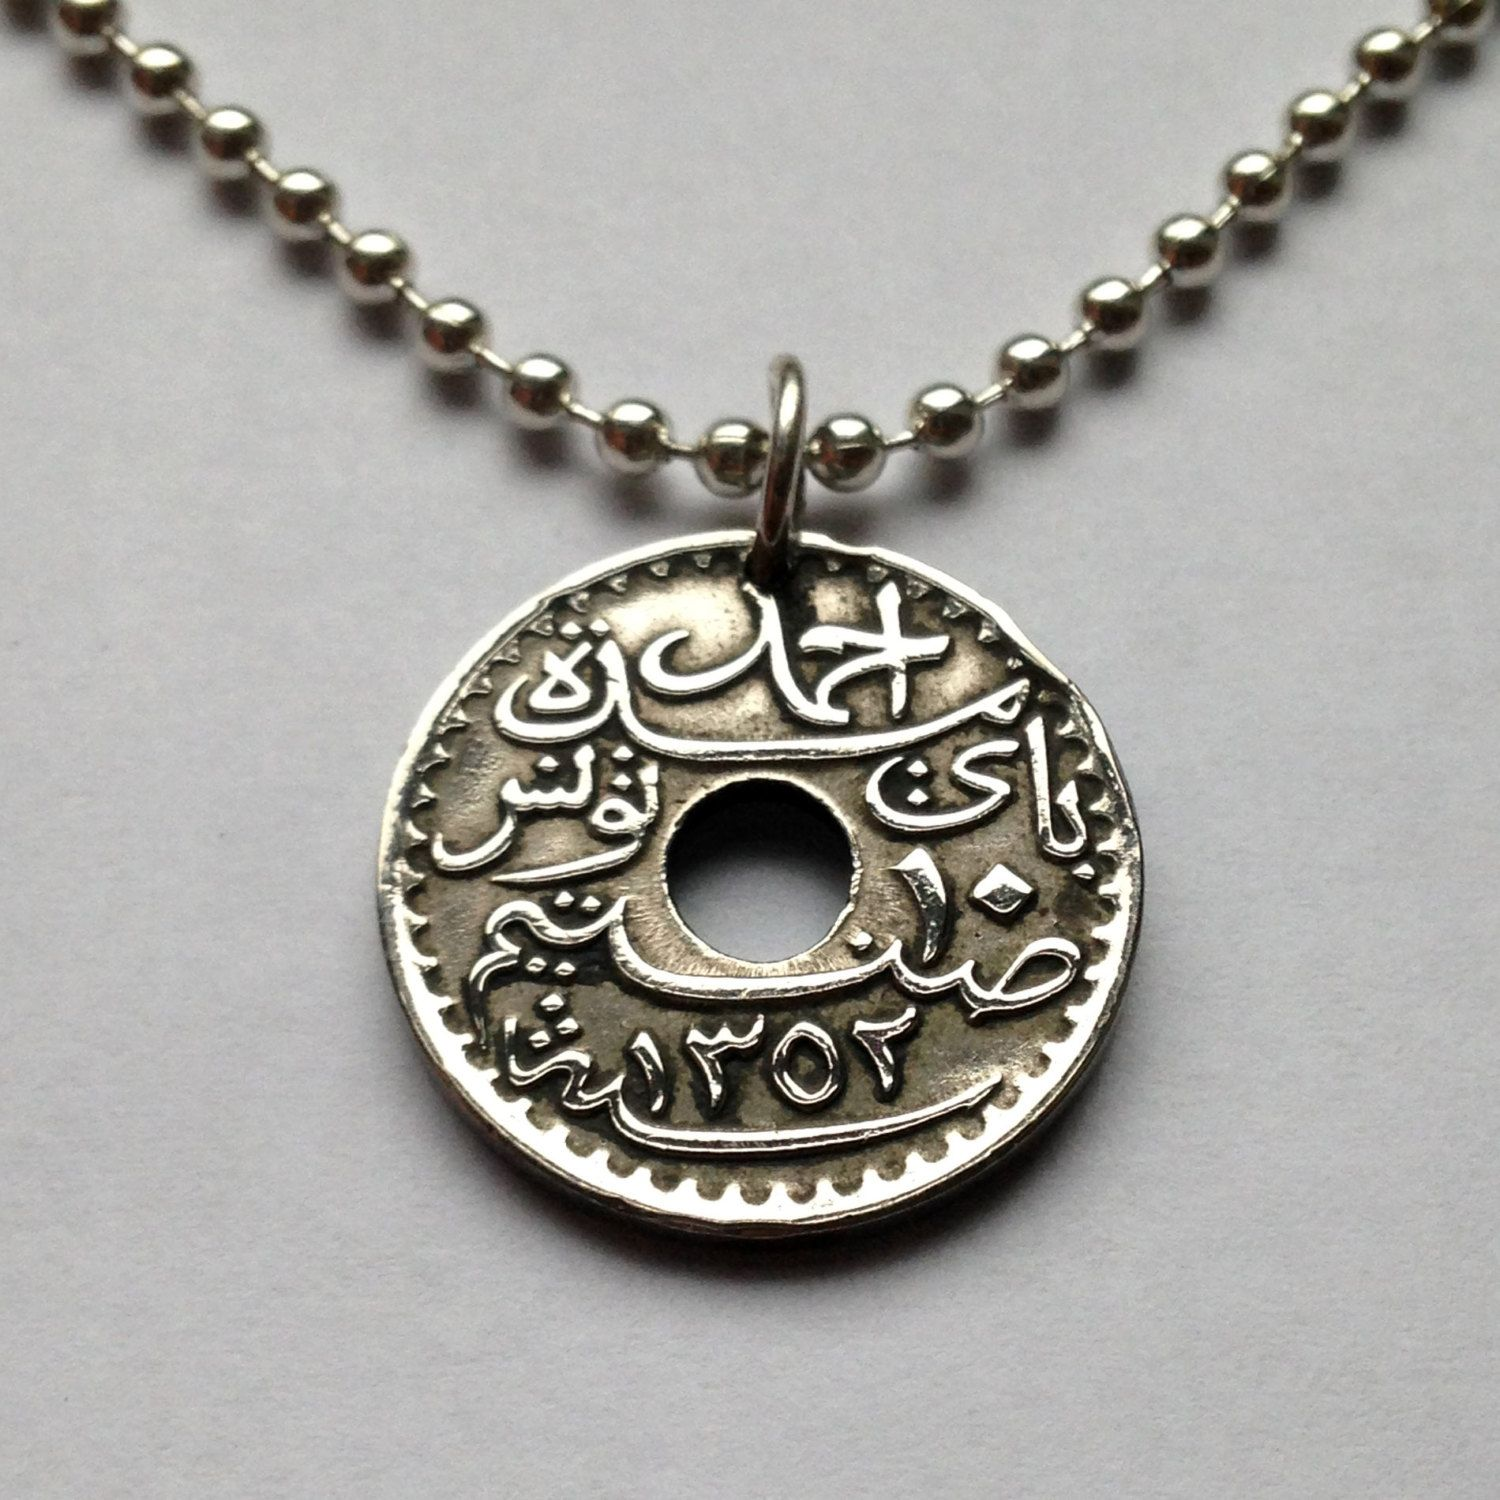 1933 Tunisia 10 Centimes Coin Pendant Charm Necklace Jewelry Arab Arabic Sunni Islam French Protectorate Occupation Ottoman E Coin Pendant Coin Jewelry Jewelry